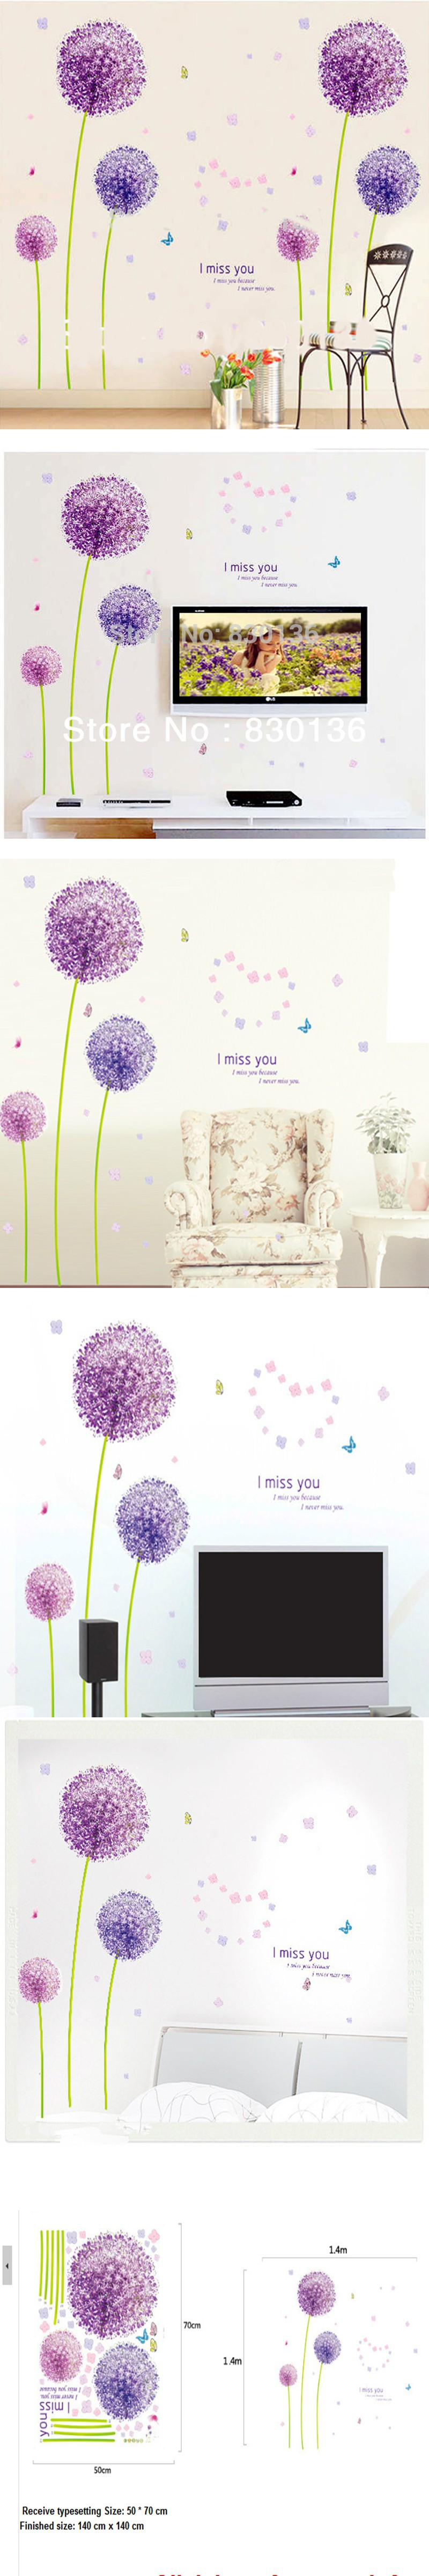 Purple dandelion creative romantic home furnishing wall of bedroom walls can remove wall stickers $8.36